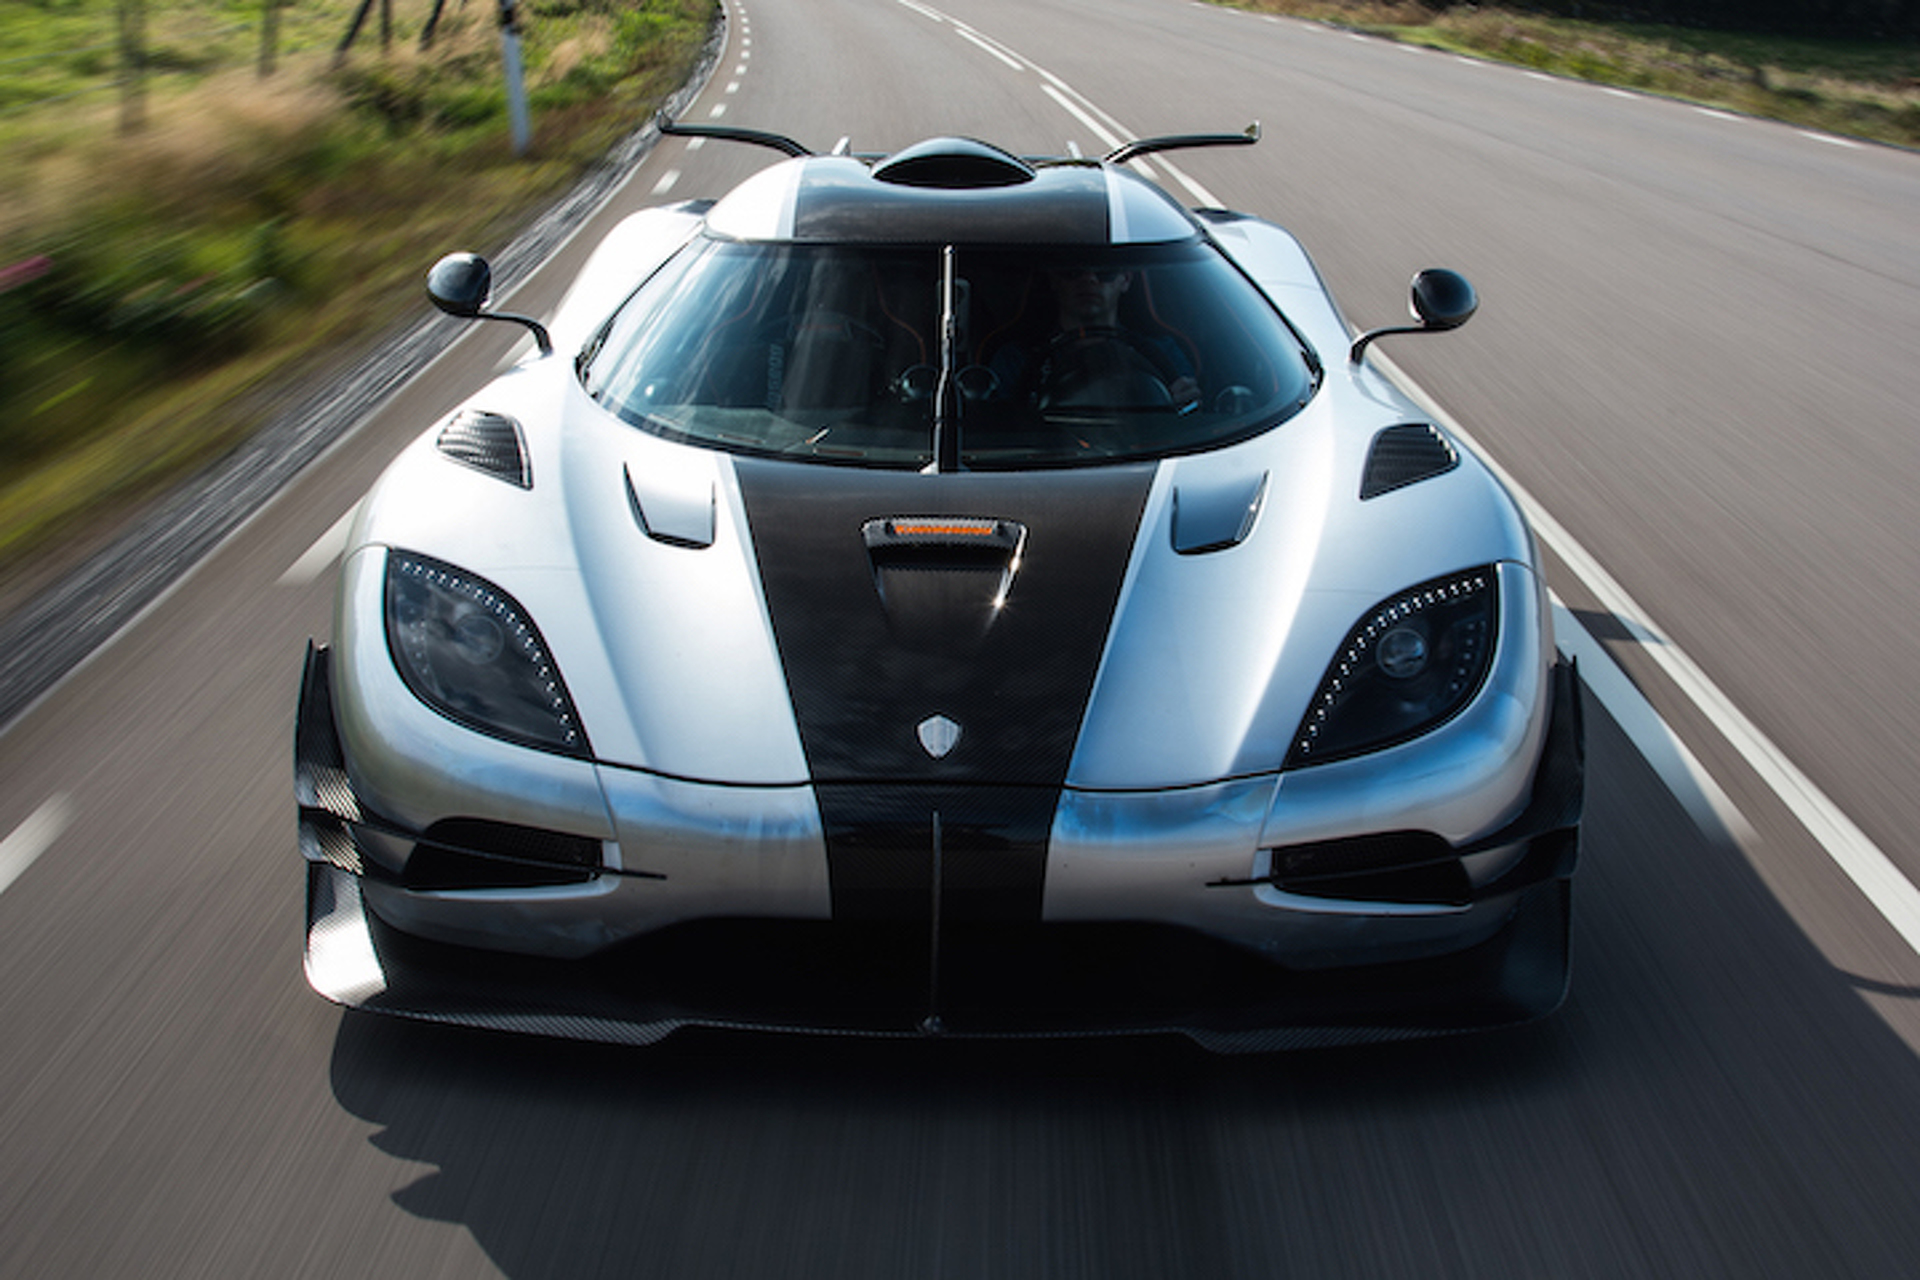 5-of-the-fastest-cars-on-the-planet Astounding Bugatti Veyron Vs Hennessey Venom Gt Cars Trend